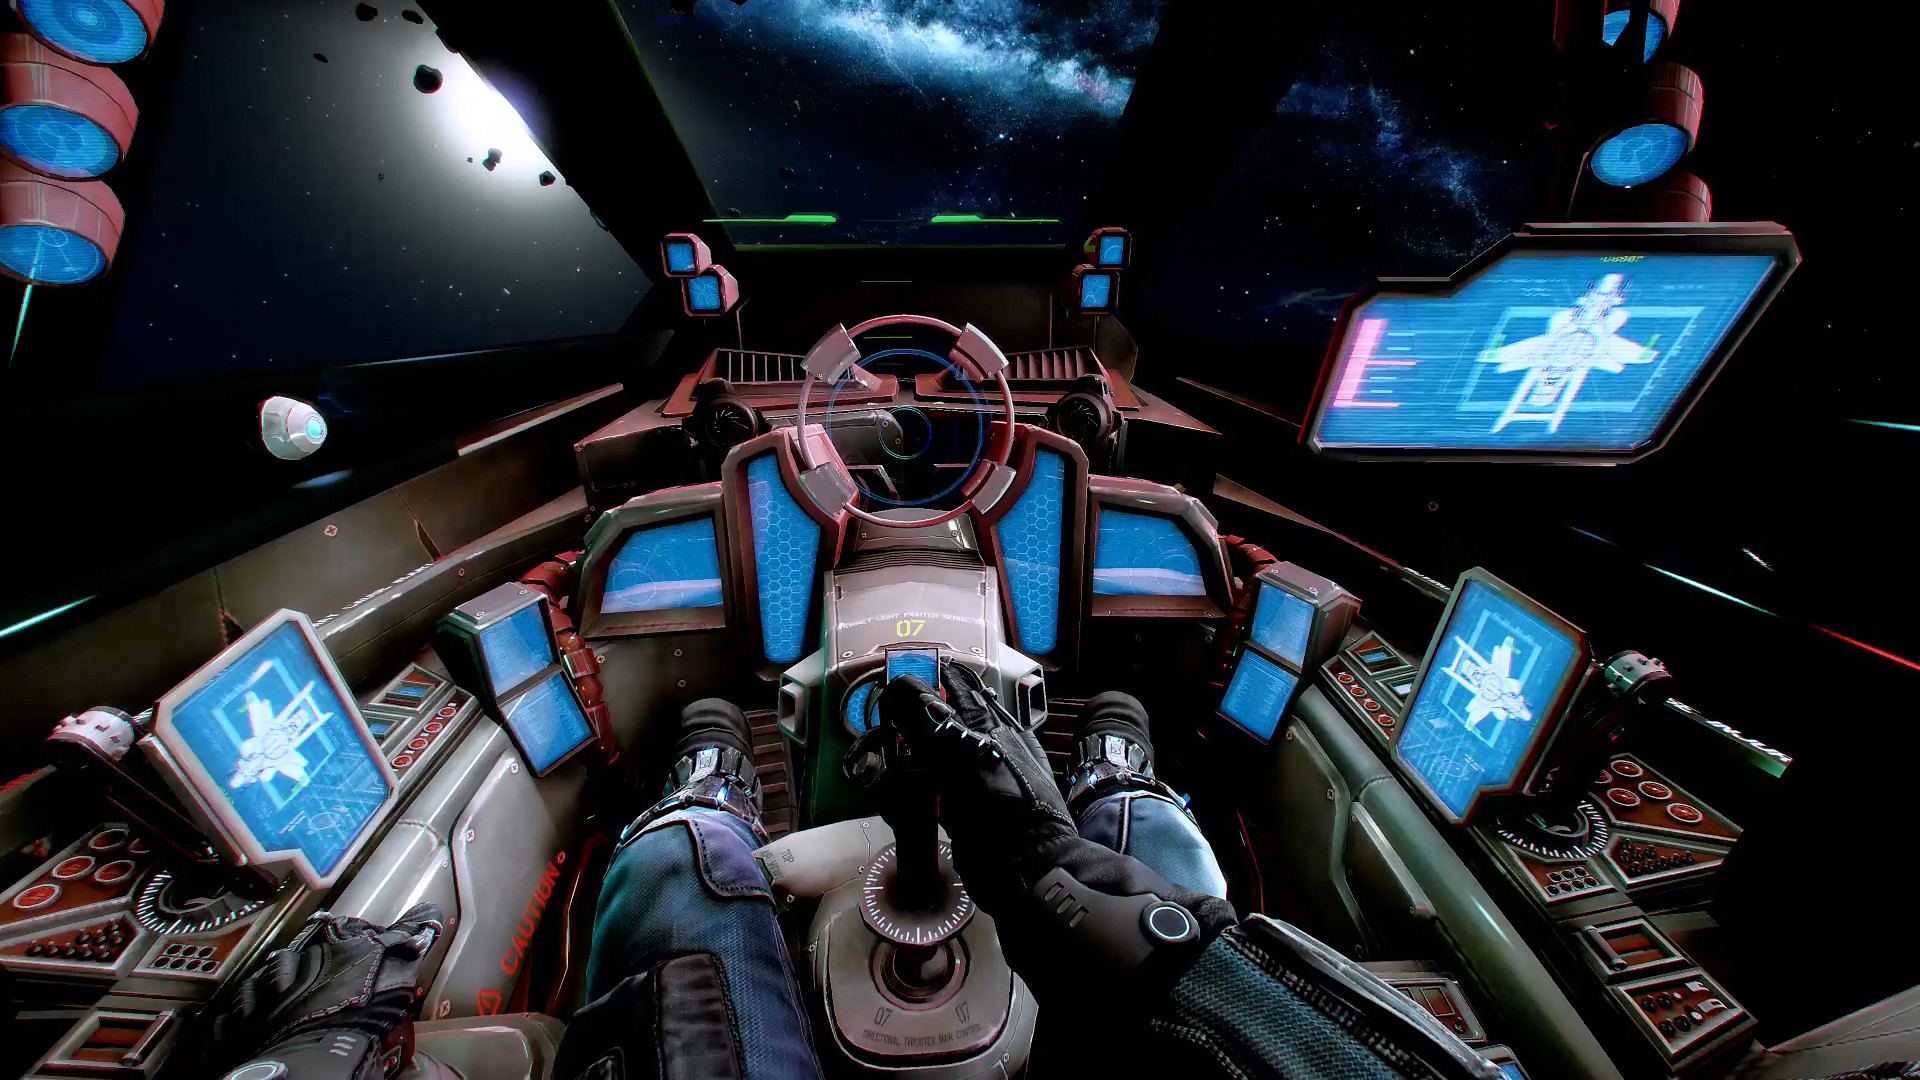 spaceship cockpit wallpaper – photo #3. Pictoword Answers All Levels  LevelCheat